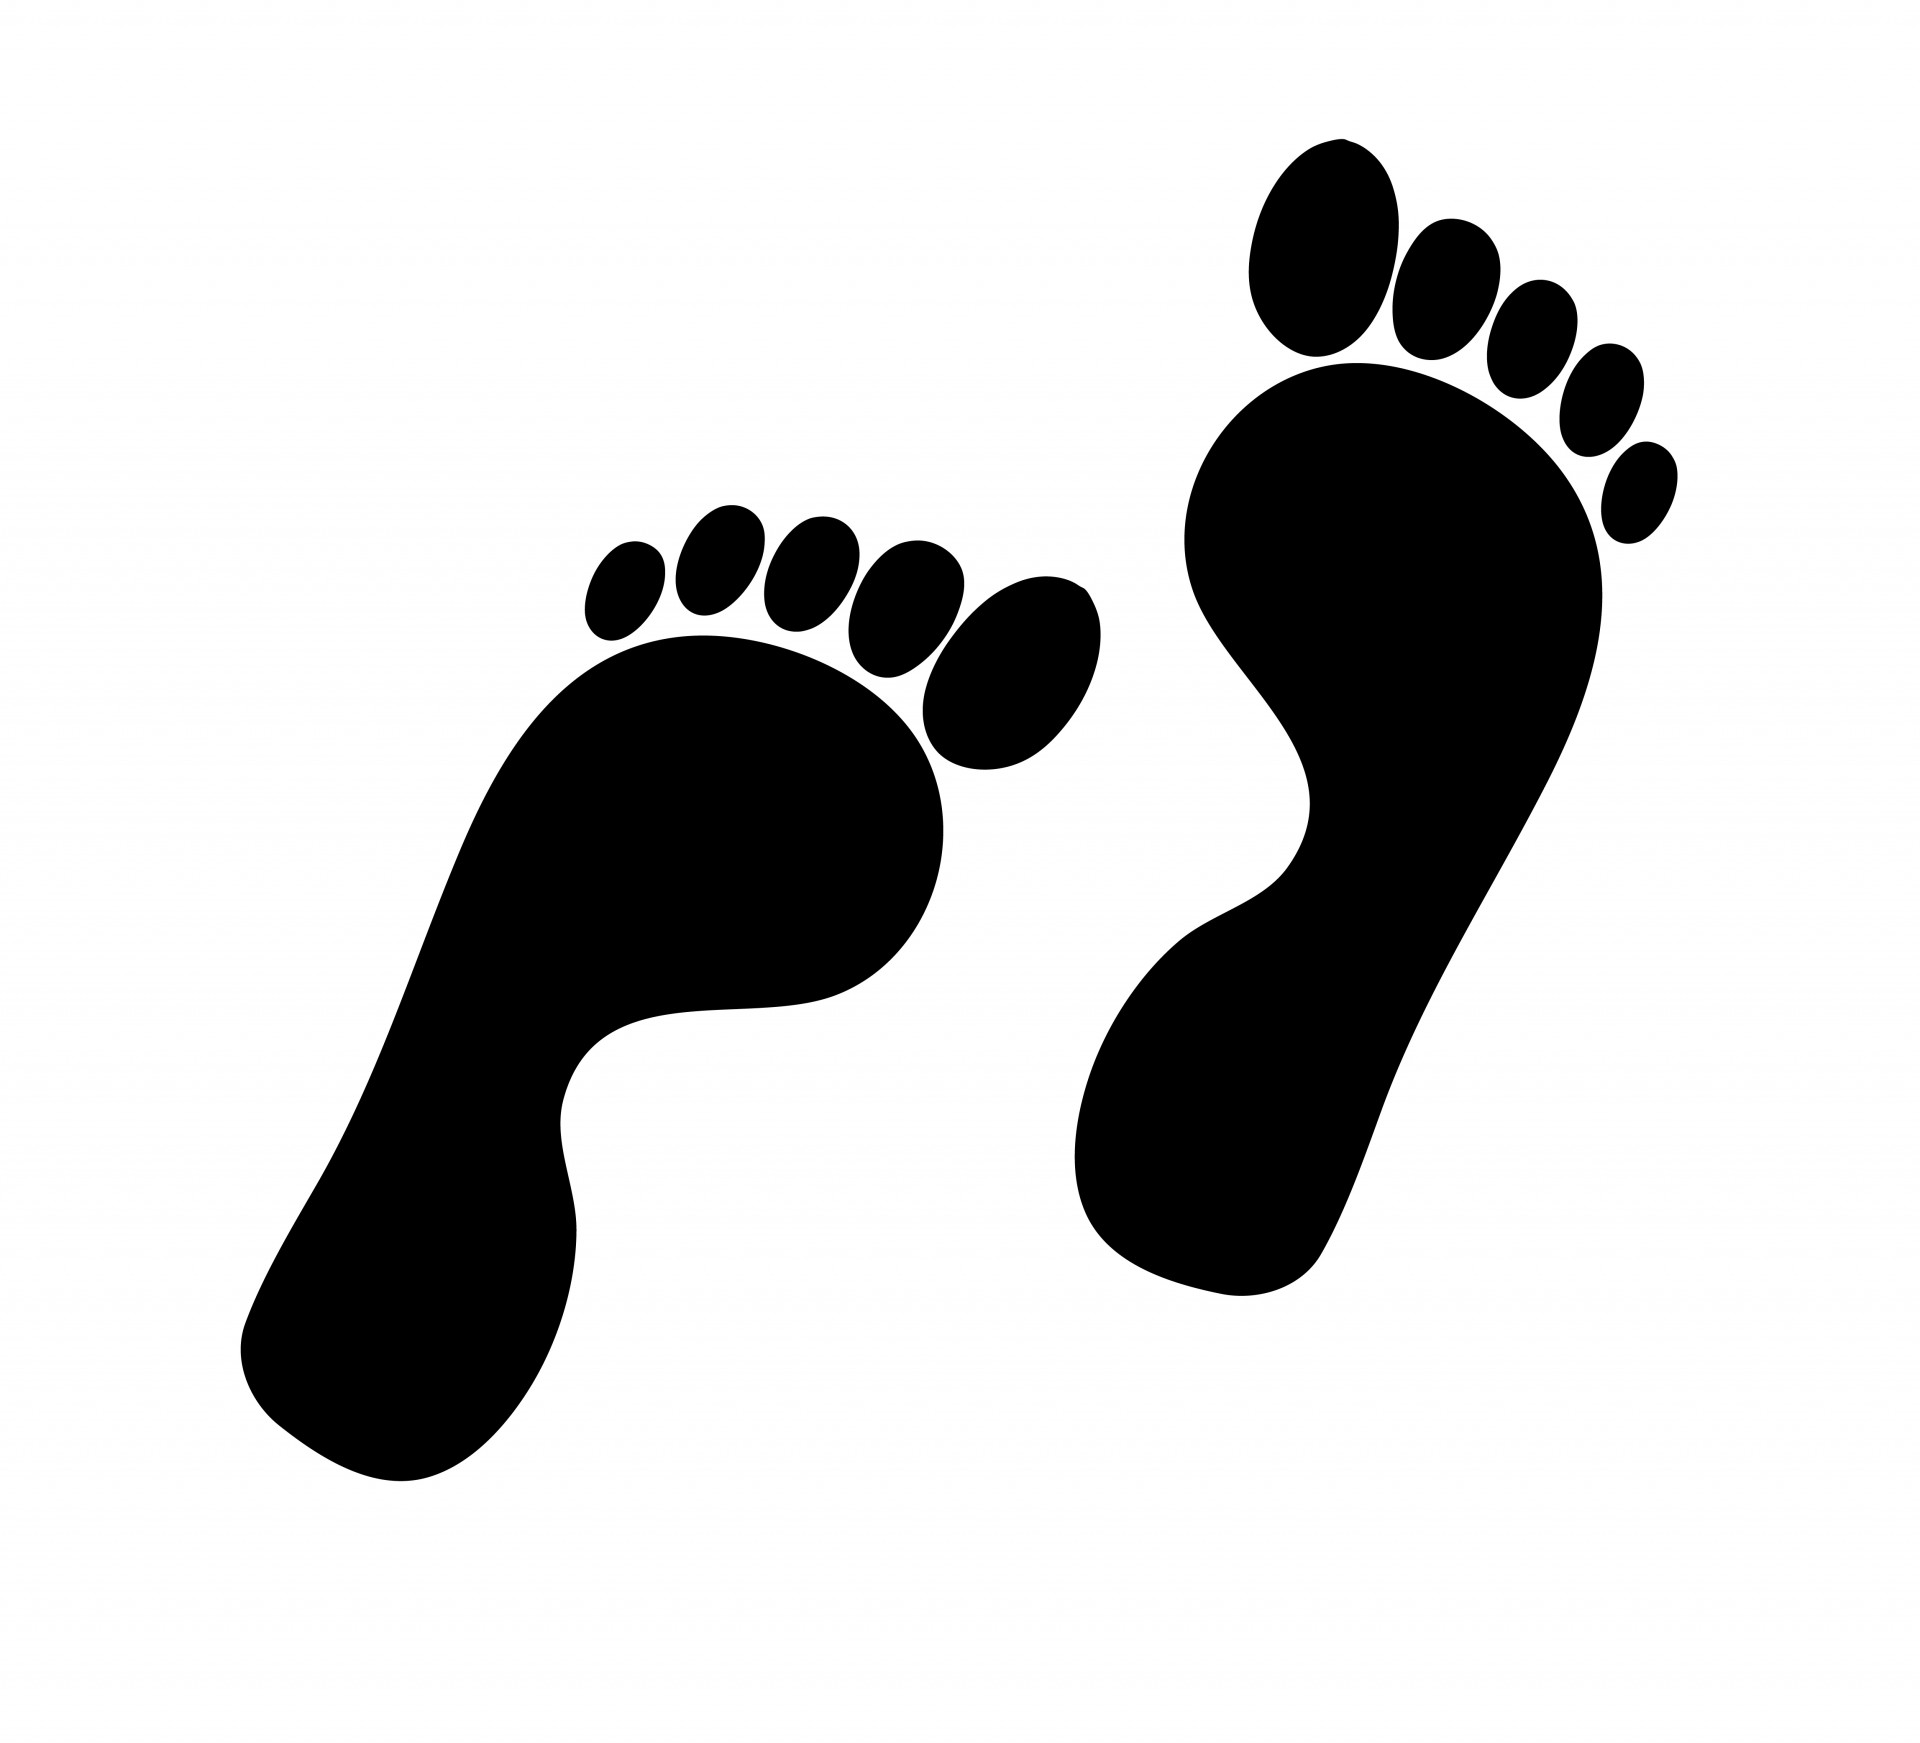 footstep silhouette at getdrawings com free for personal use rh getdrawings com